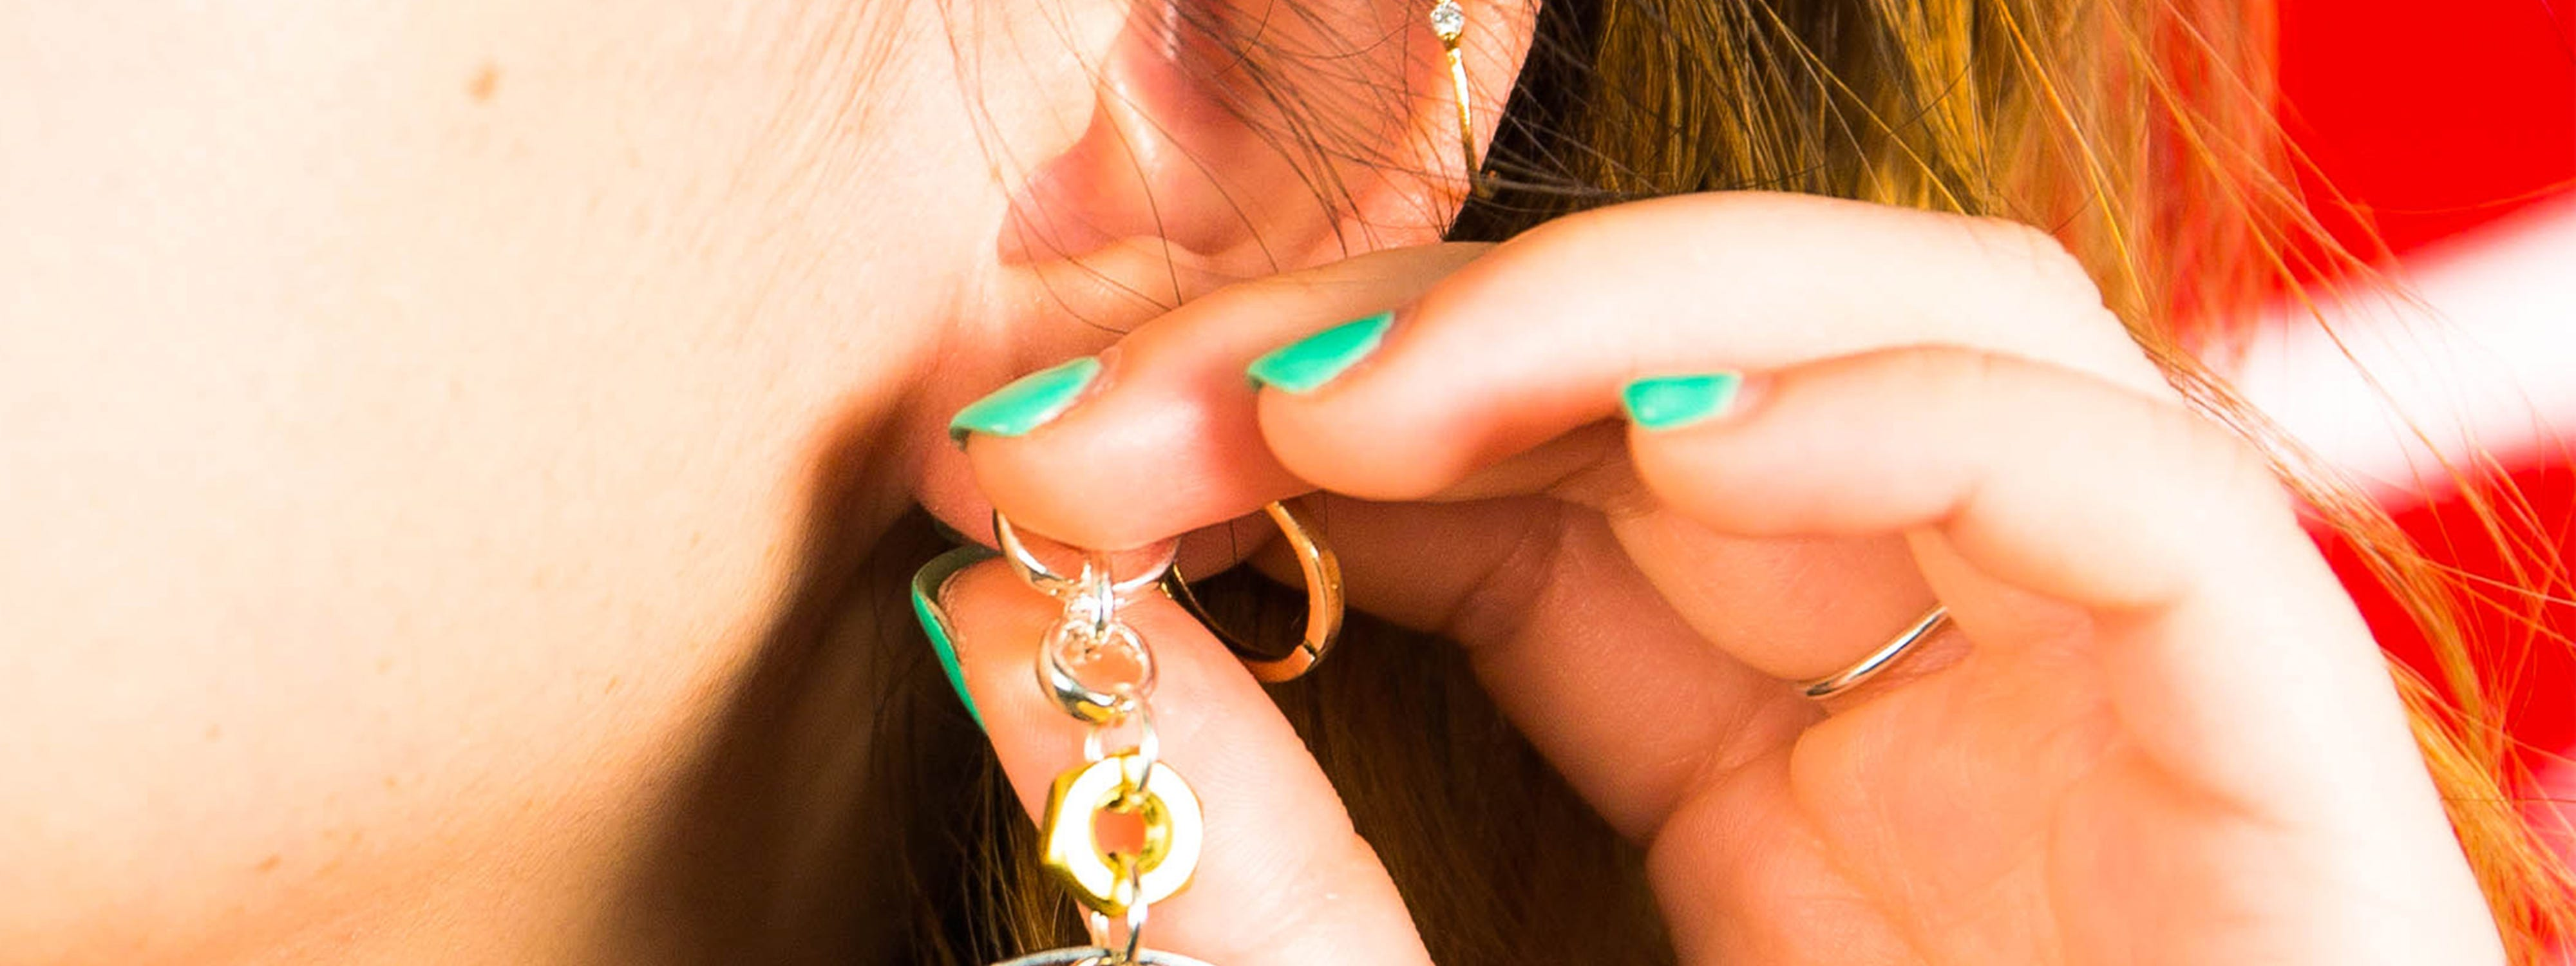 How To Treat Infected Ear Piercings From Dermatologist